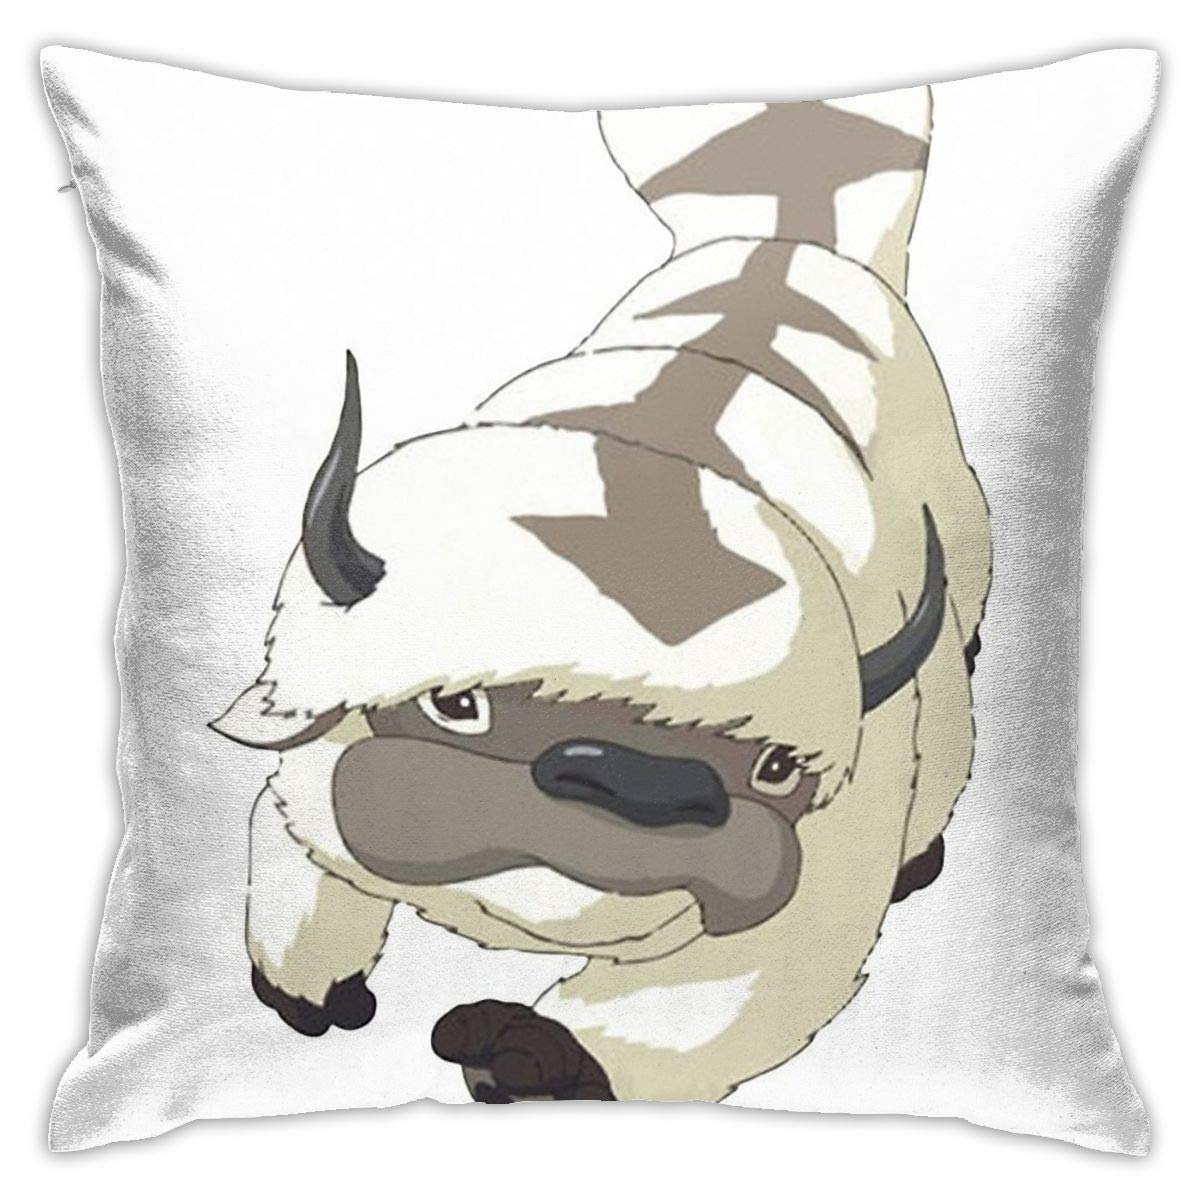 HQSL Appa Sky Bison Japanese Anime Flying The Last Airbender Avatar Decorative Throw Pillow Covers for Sofa Couch Cushion Pillow Cases 18x18 Inch